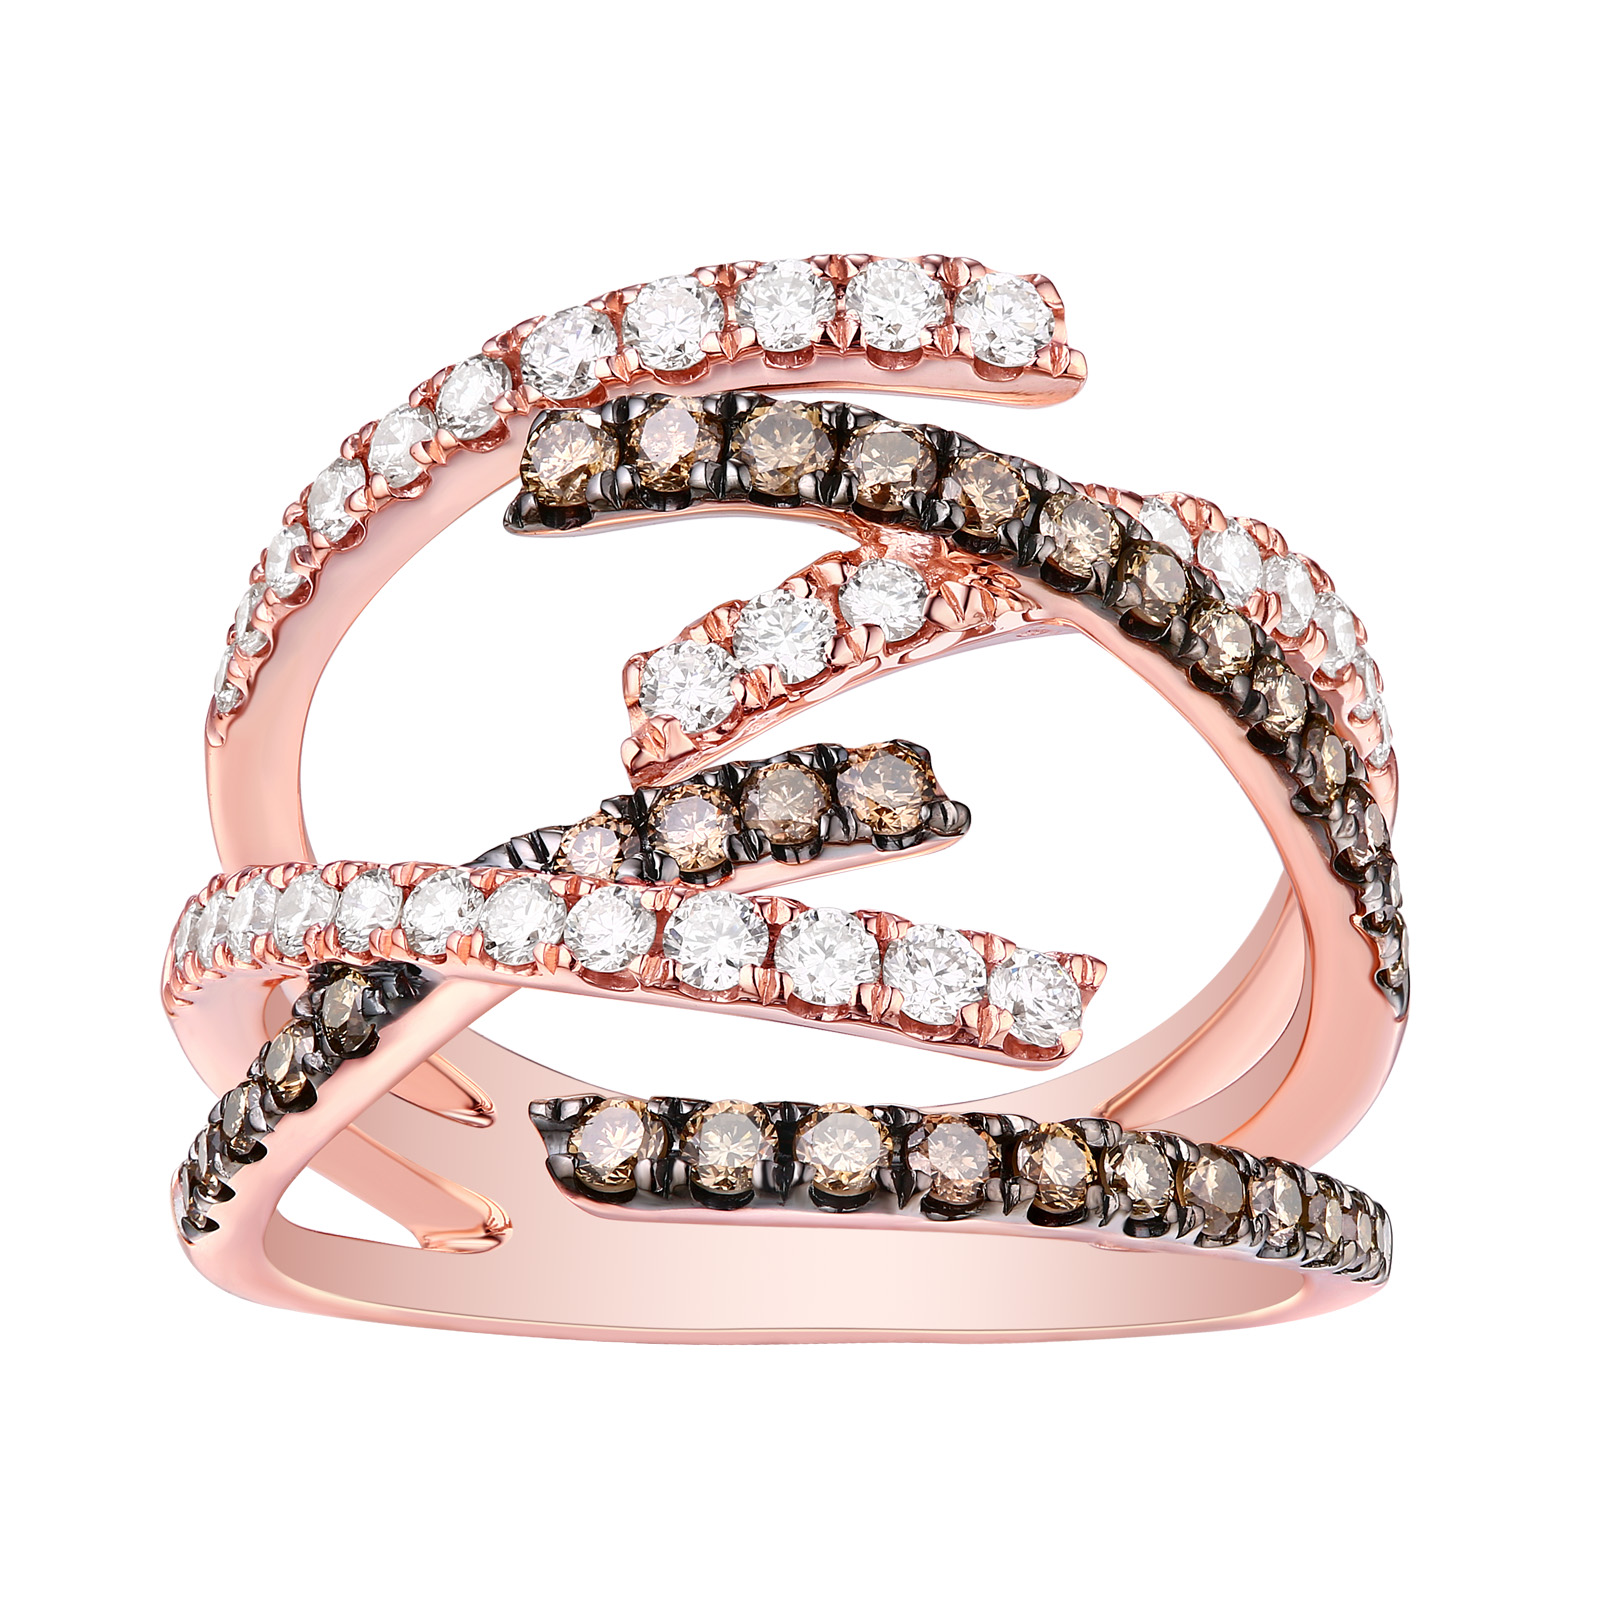 R26166WBR- 14K Rose Gold Diamond Ring, 1.13 TCW